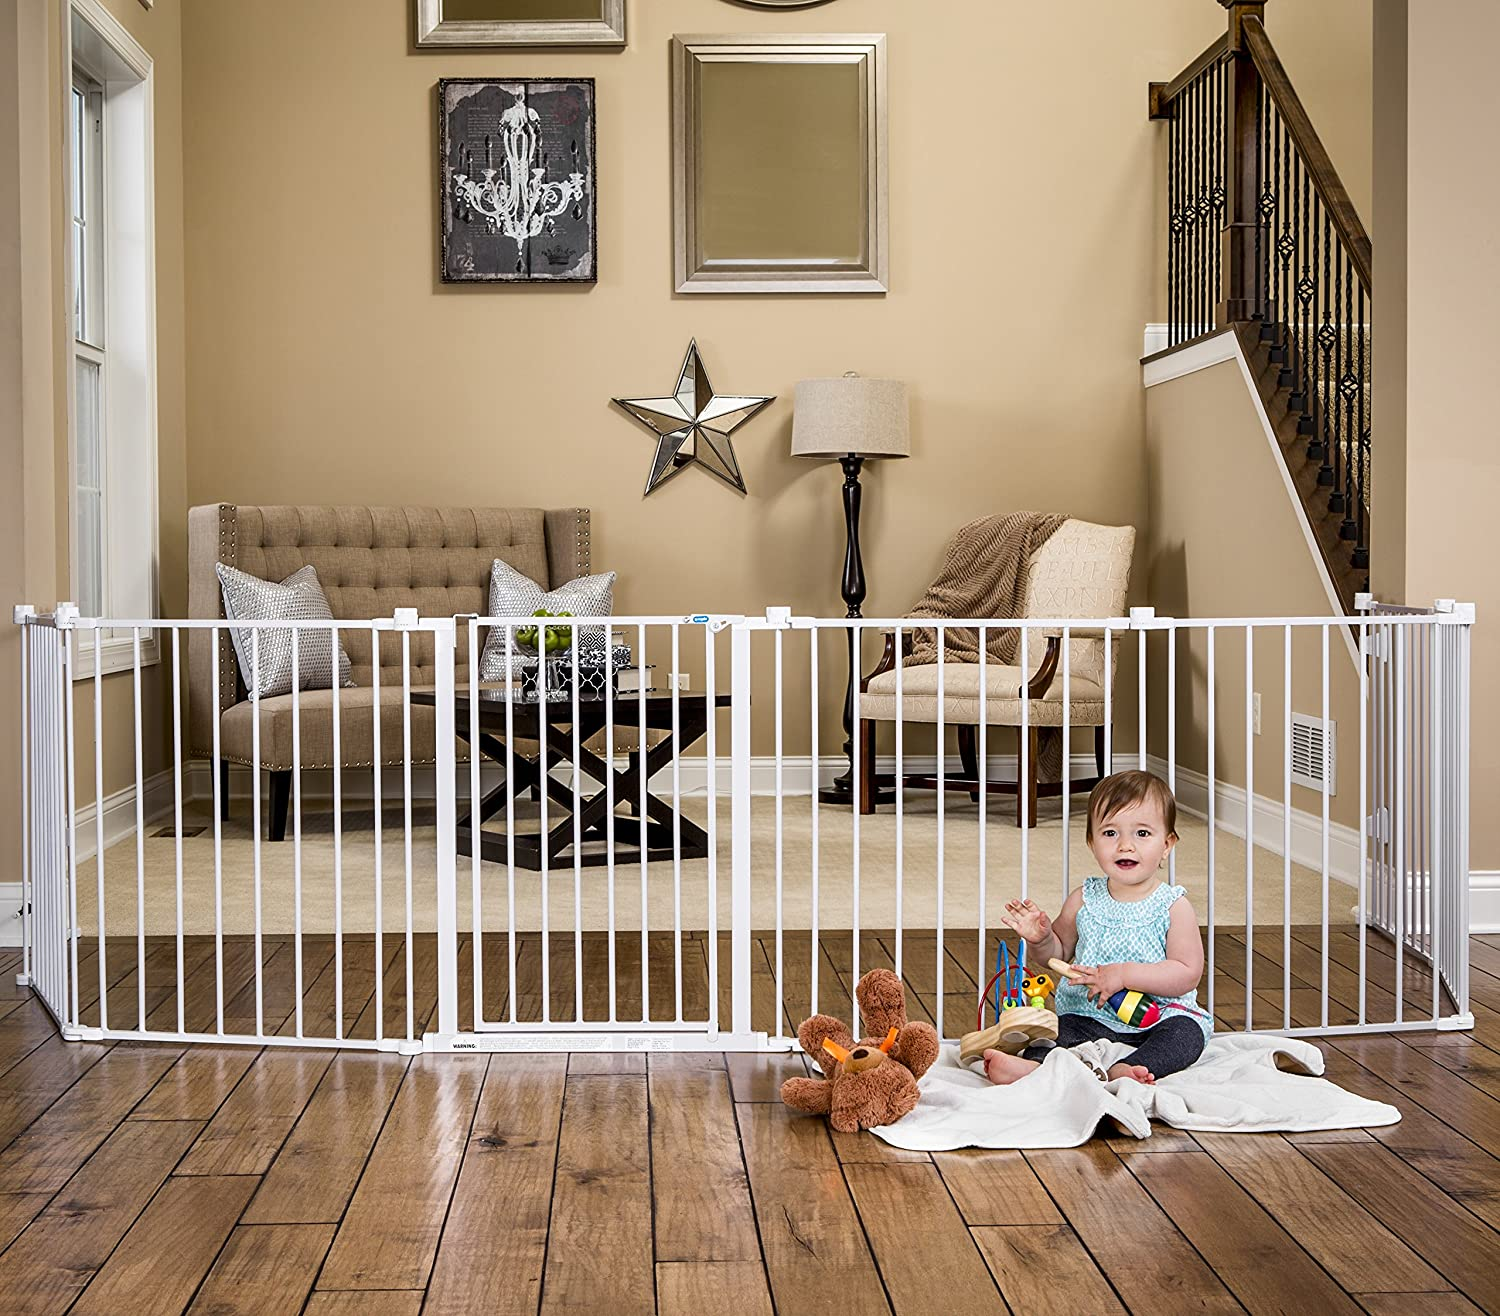 Regalo 192 Inch Super Wide Gate And Play Yard White Amazon Baby